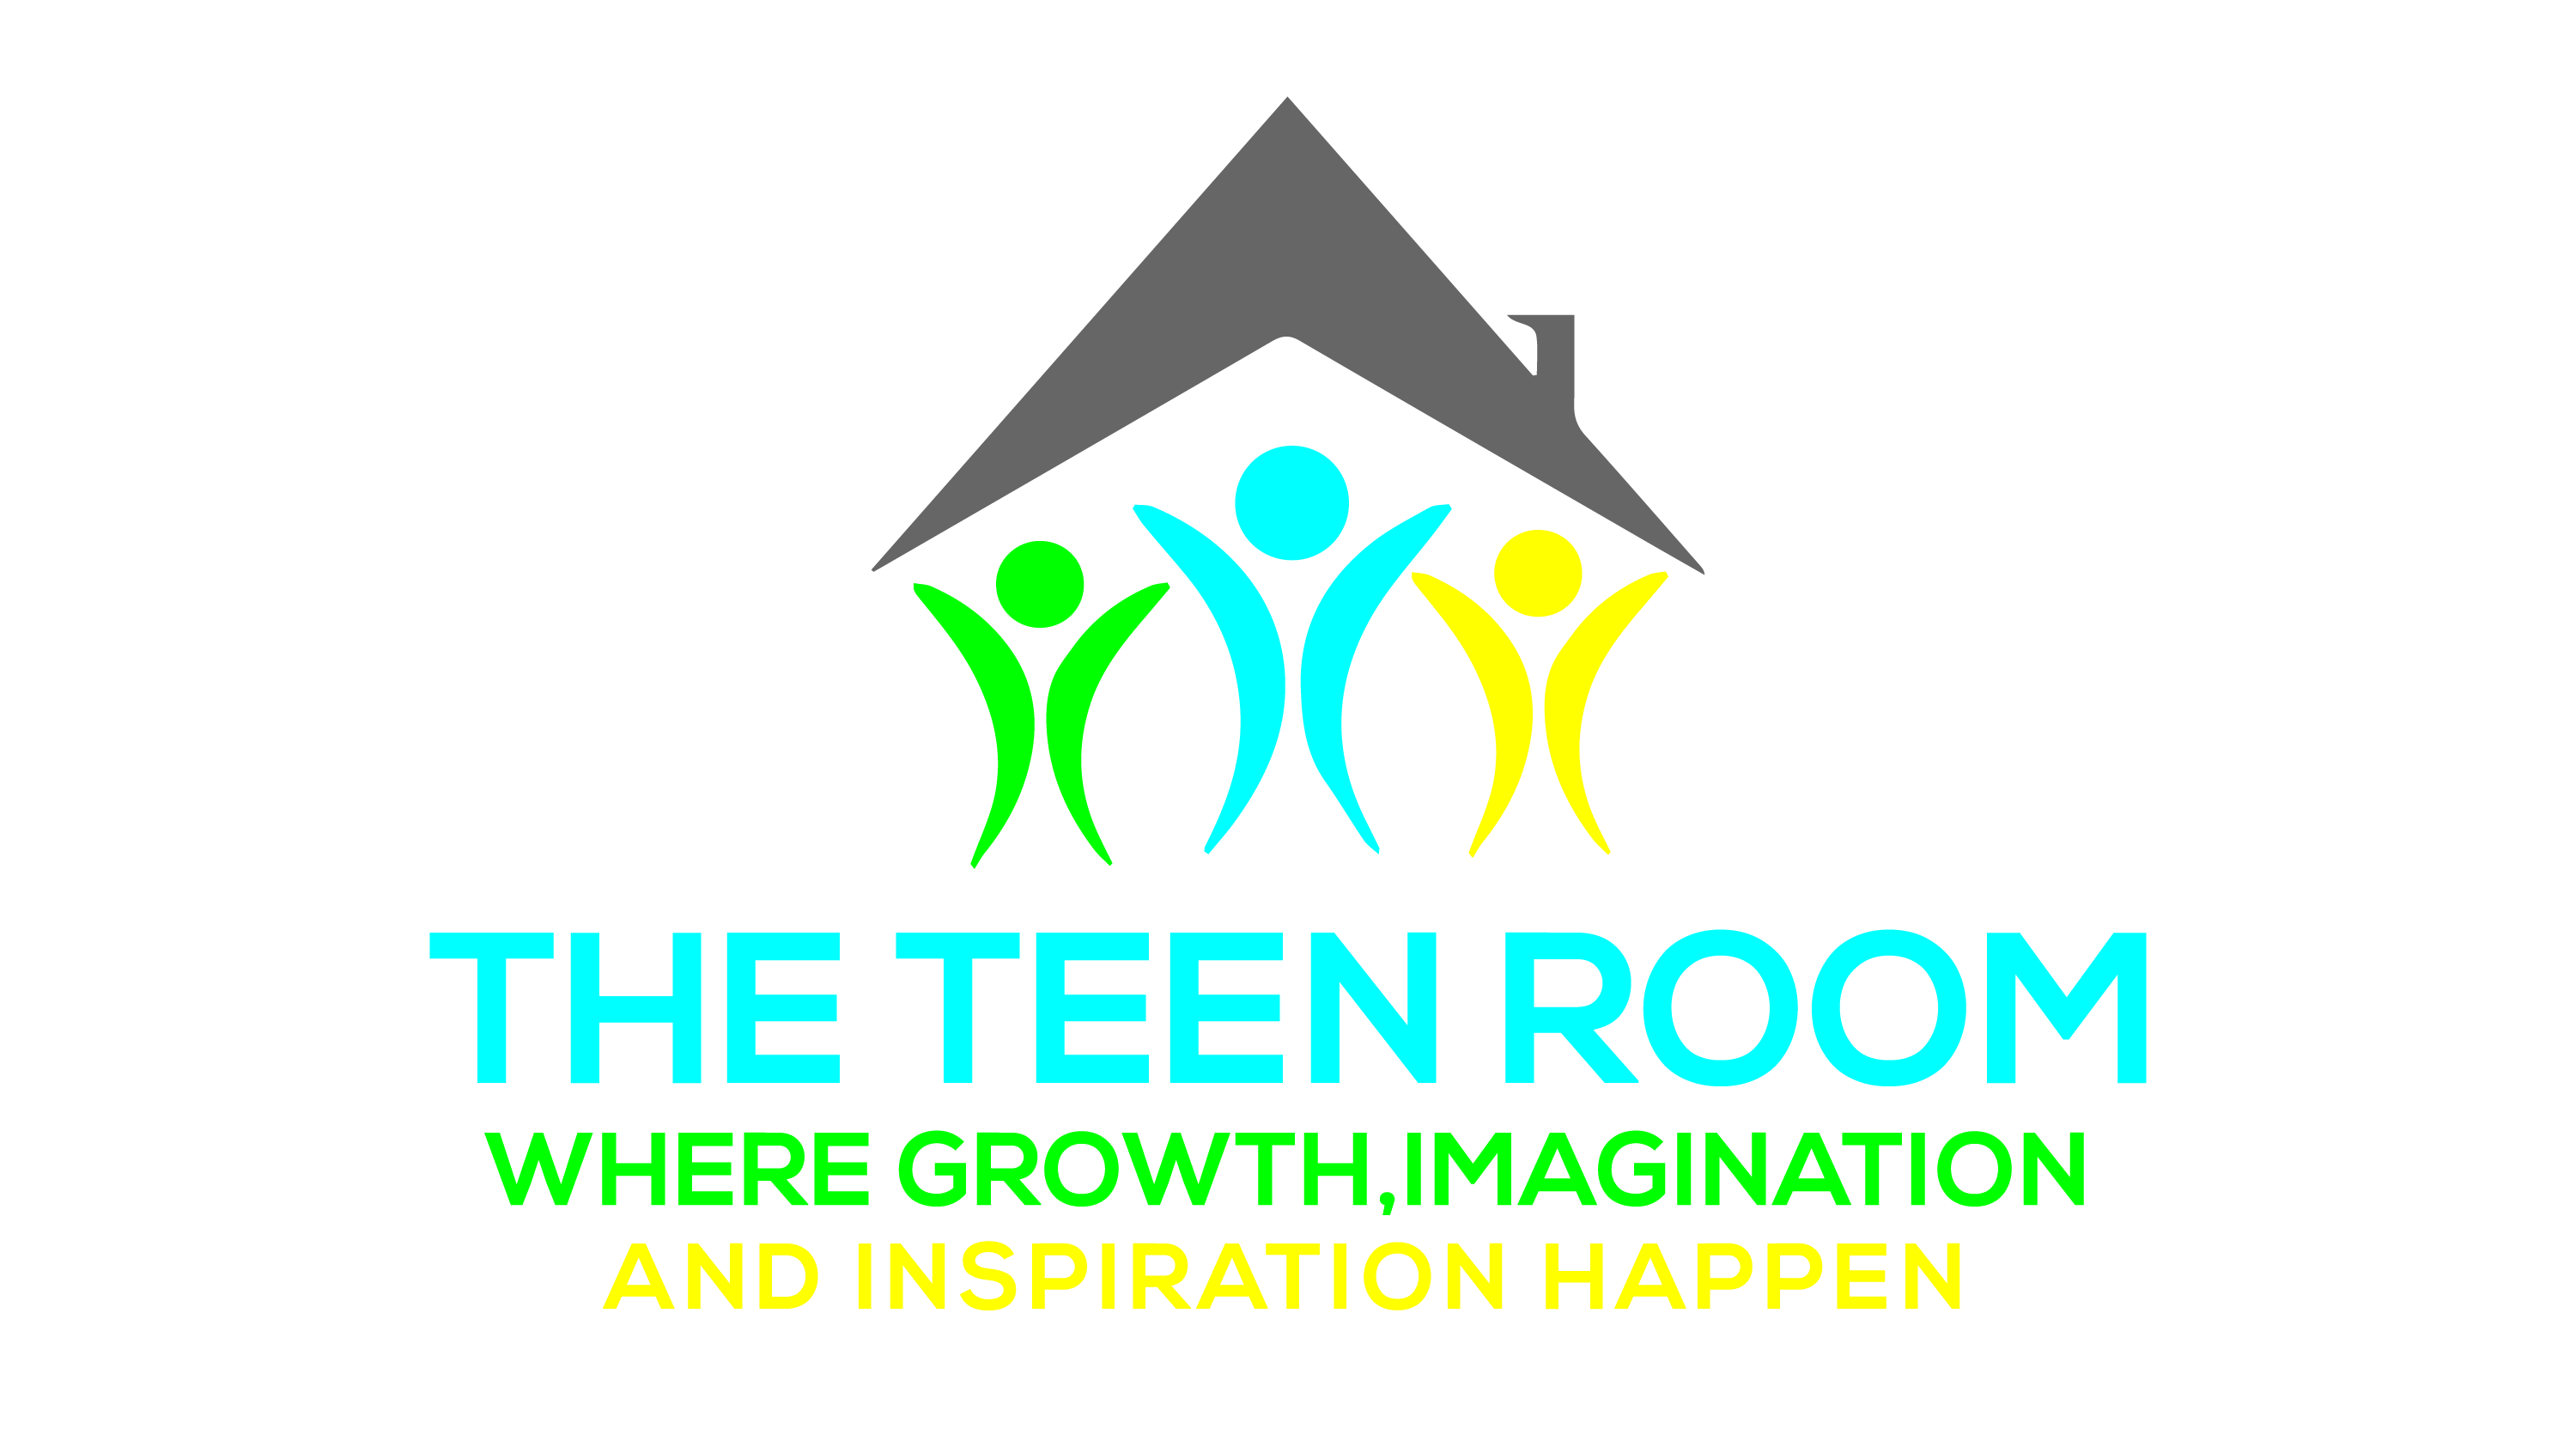 The Teen Room